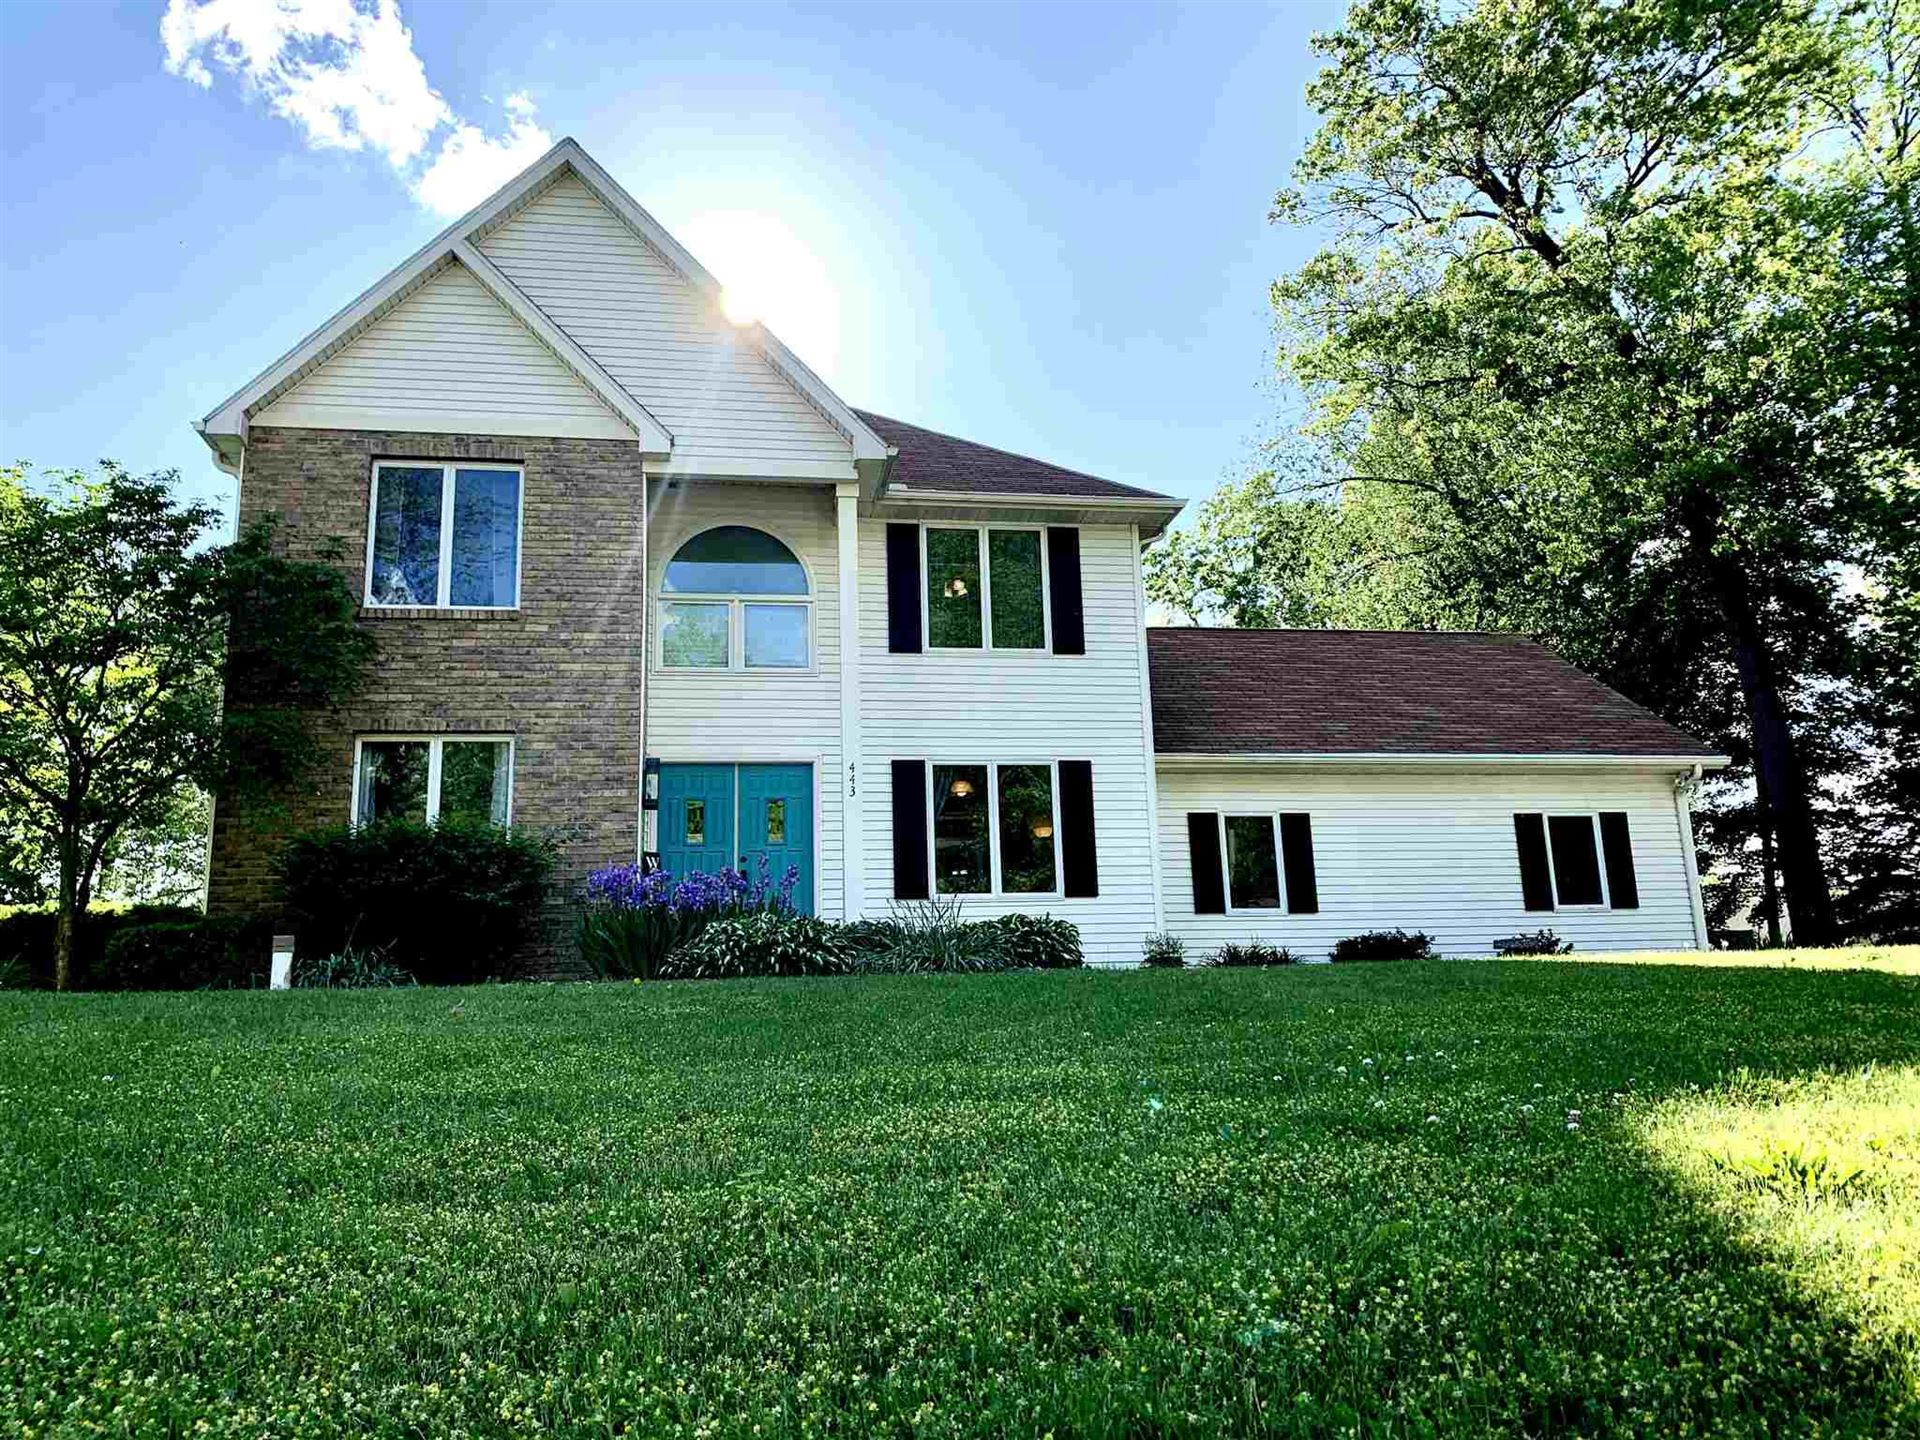 443 N Lincoln Park, Warsaw, IN 46582 - #: 202019447